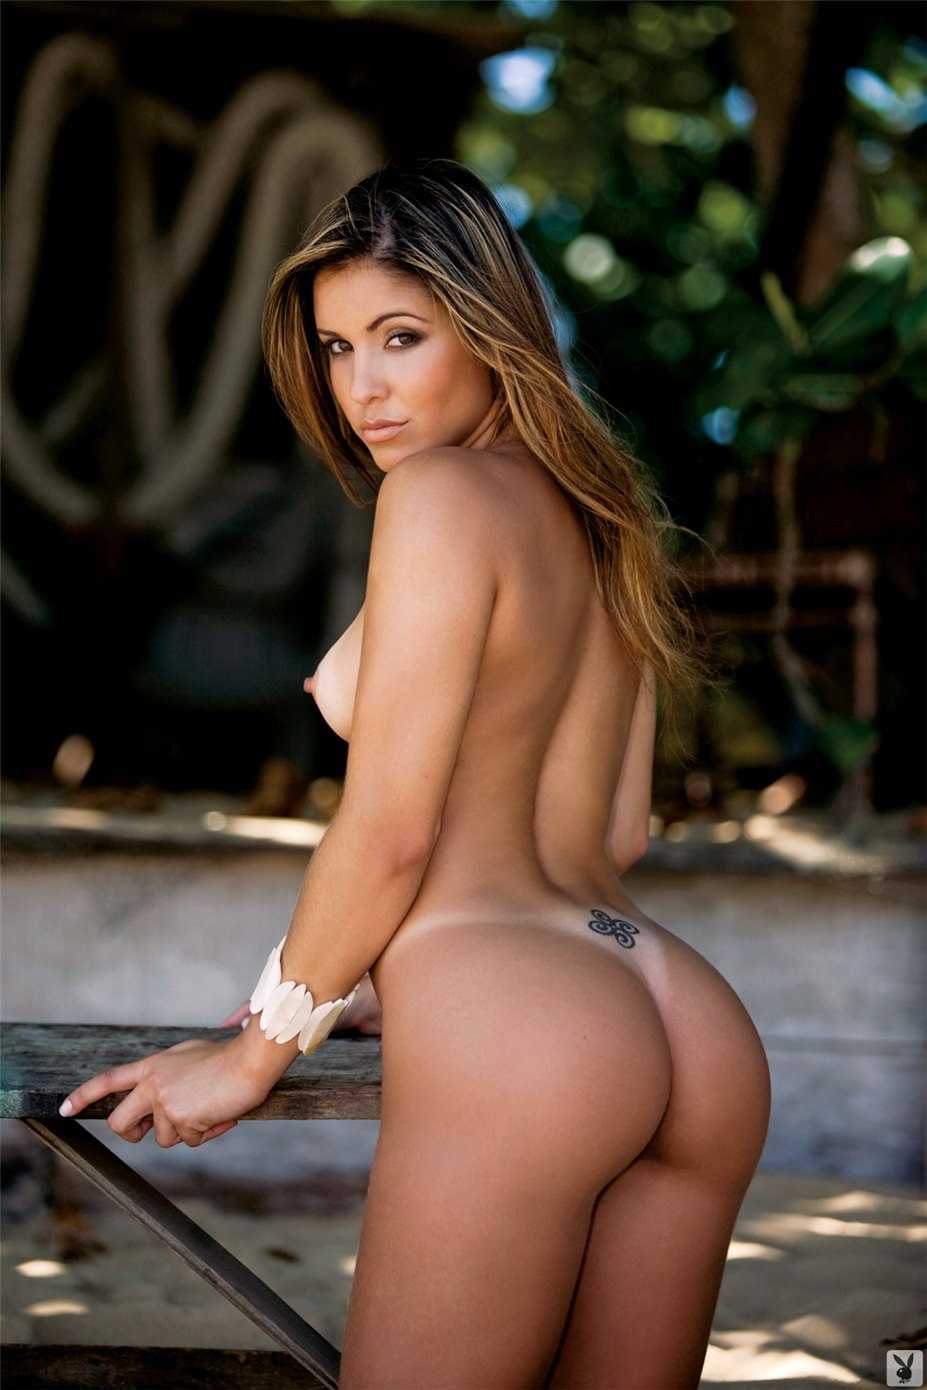 Ass of the World / Rear View - Playboy - самые красивые попы - Kelly Amorim